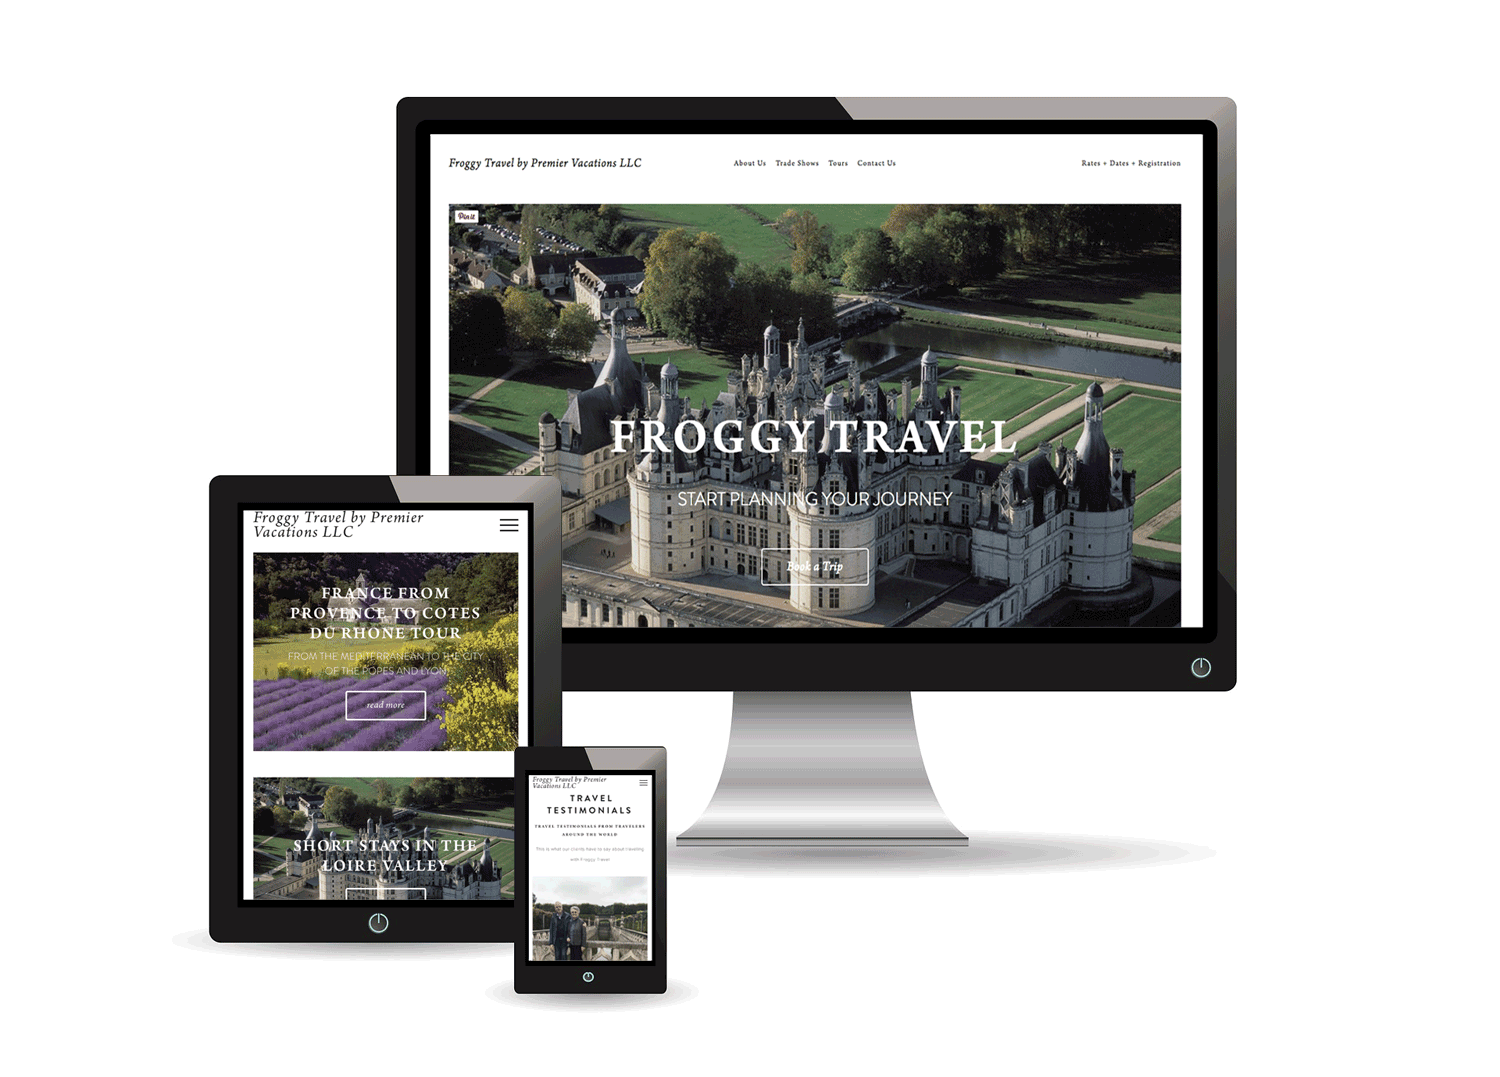 FROGGY TRAVEL | Luxury Travel & Tour Operator Website - Froggy Travel, a luxury travel agency and tour operator with offices in the USA and France, was looking to revamp their online presence and improve their digital marketing and design. They turned to Little Owl Design Studio to develop a site that was intuitive and showcased their tours. Booking and contact forms integrated with Google Drive Sheets and MailChimp have helped them manage and store visitor and booking information. Branded social media profiles were set up on Facebook, Instagram, Twitter, and Pinterest then connected to the site. On the Squarespace platform, we provided a sleek, minimalist design, edited the copy, optimized pages for search engines.Digital ads matching website content were then designed to inspire interest, enhance their online presence, and attract new visitors to the site.